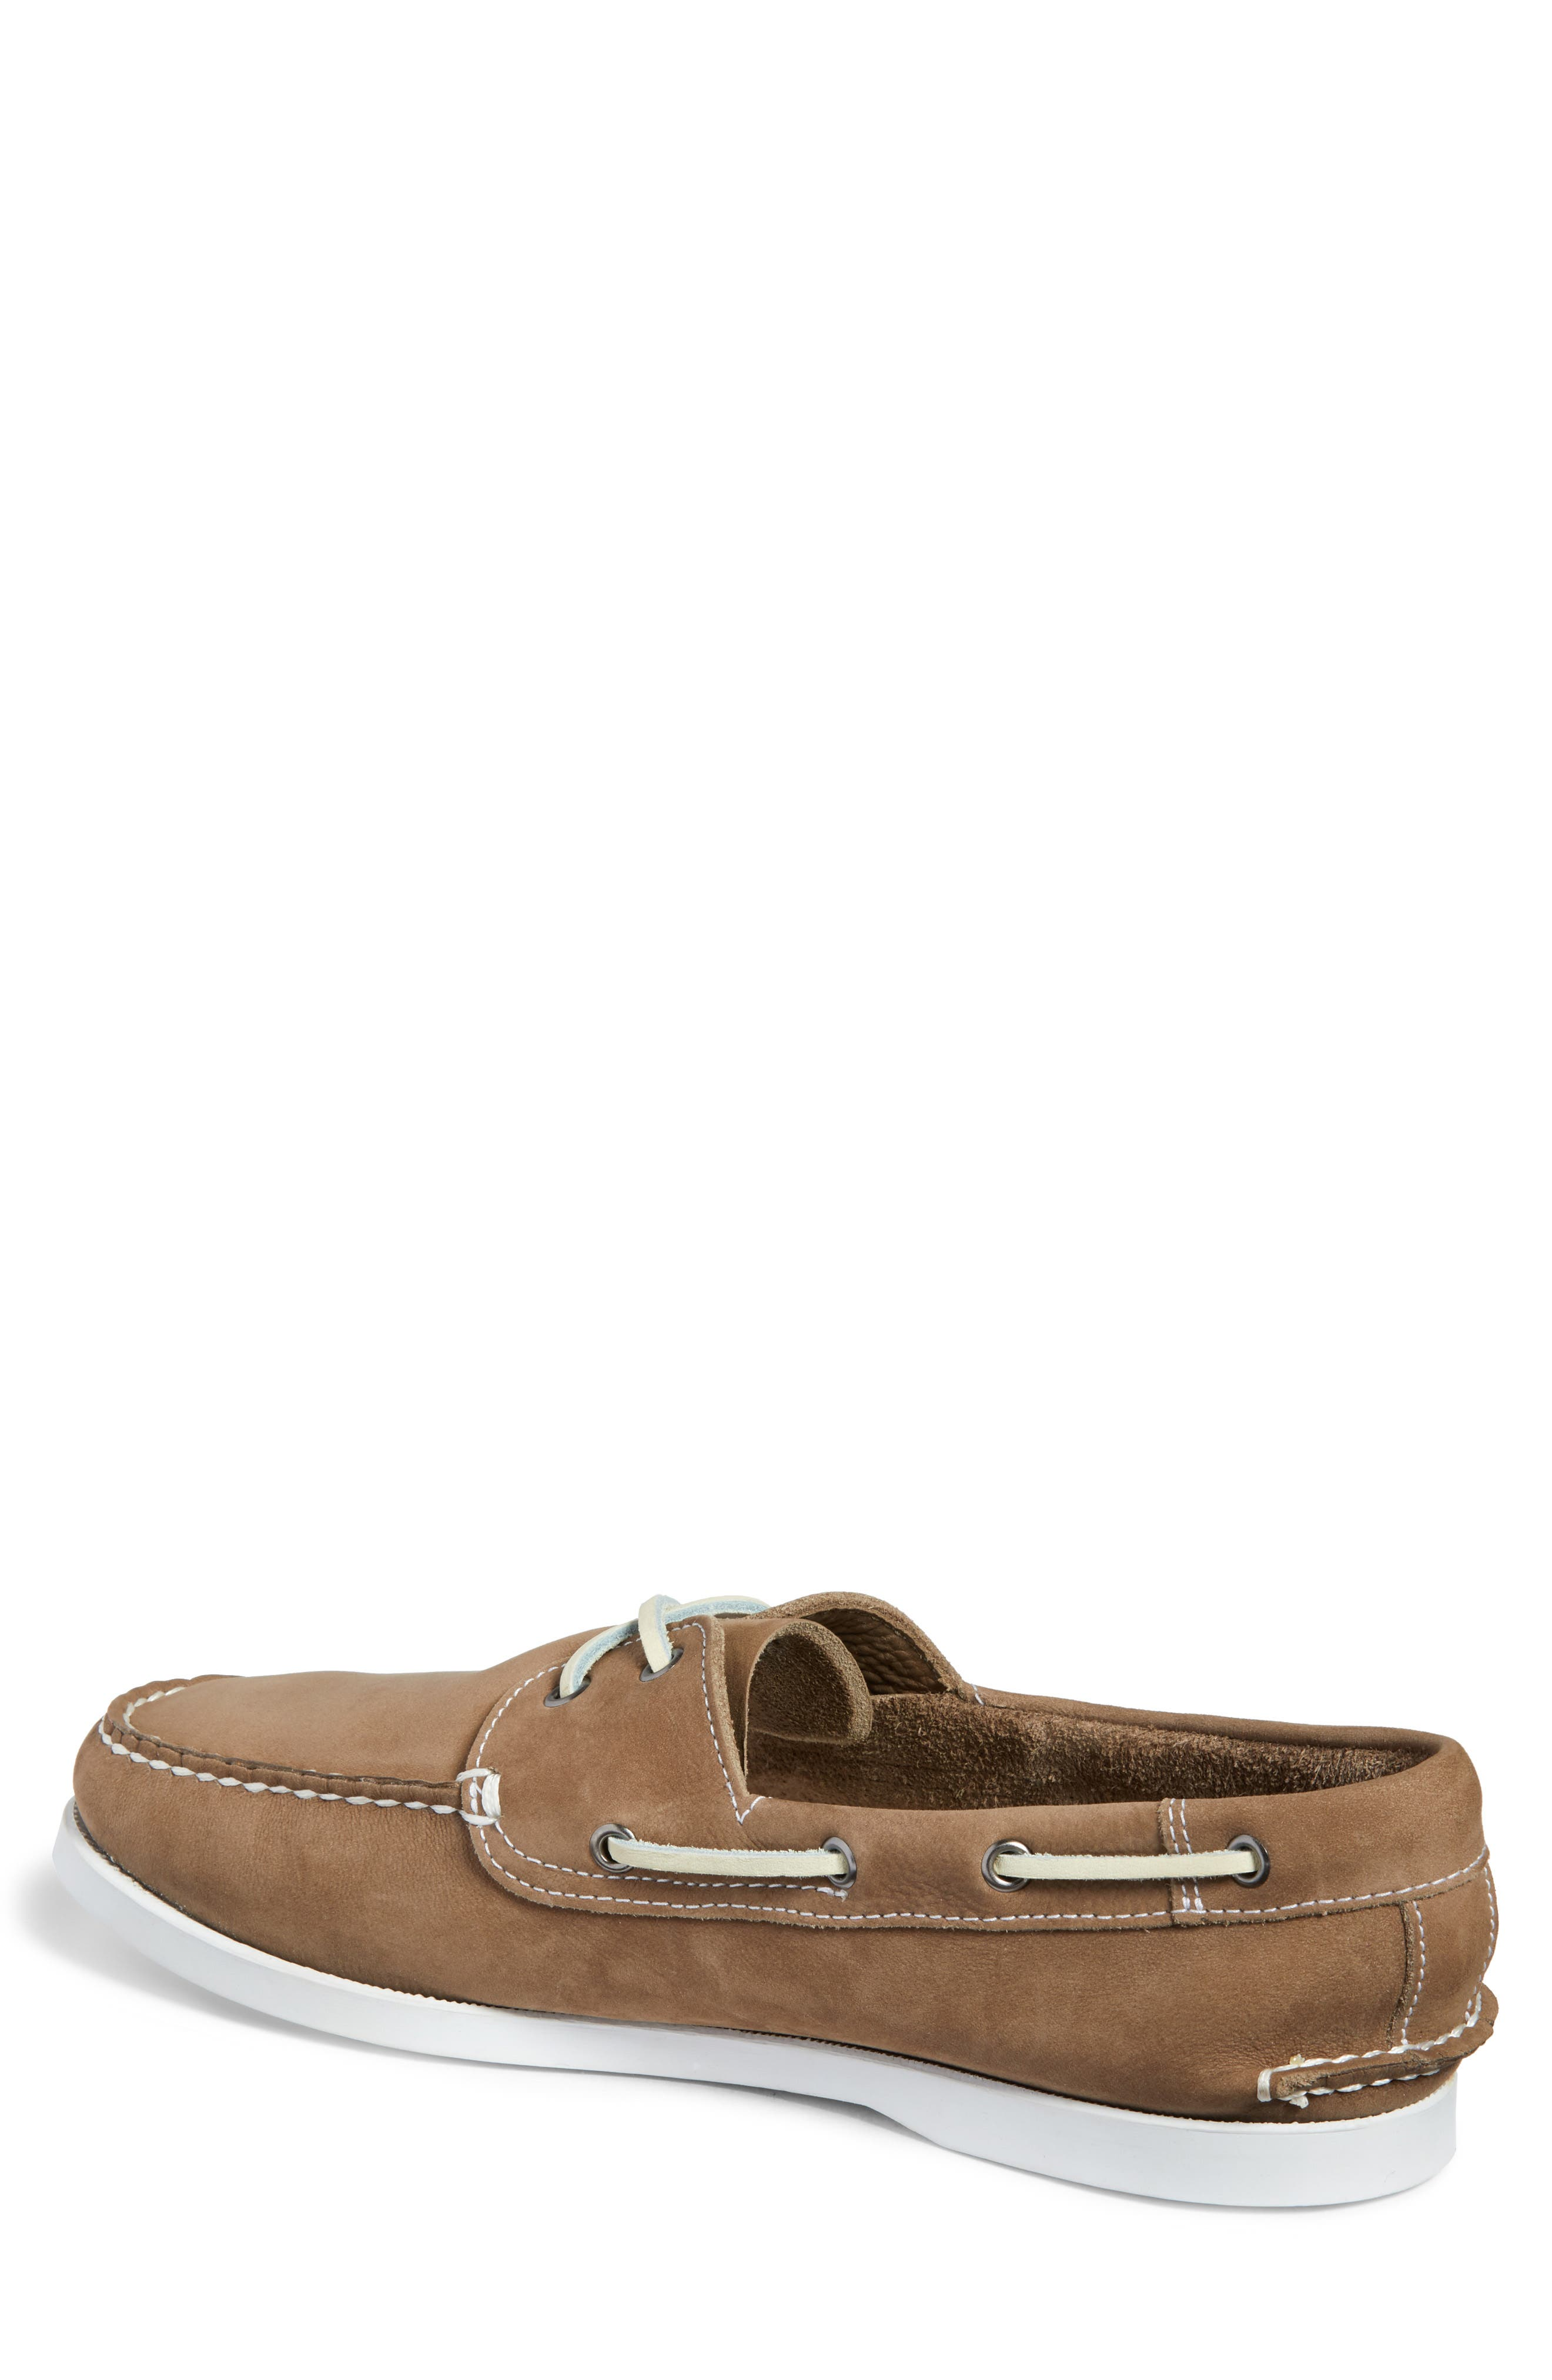 Pacific Boat Shoe,                             Alternate thumbnail 2, color,                             GREY NUBUCK